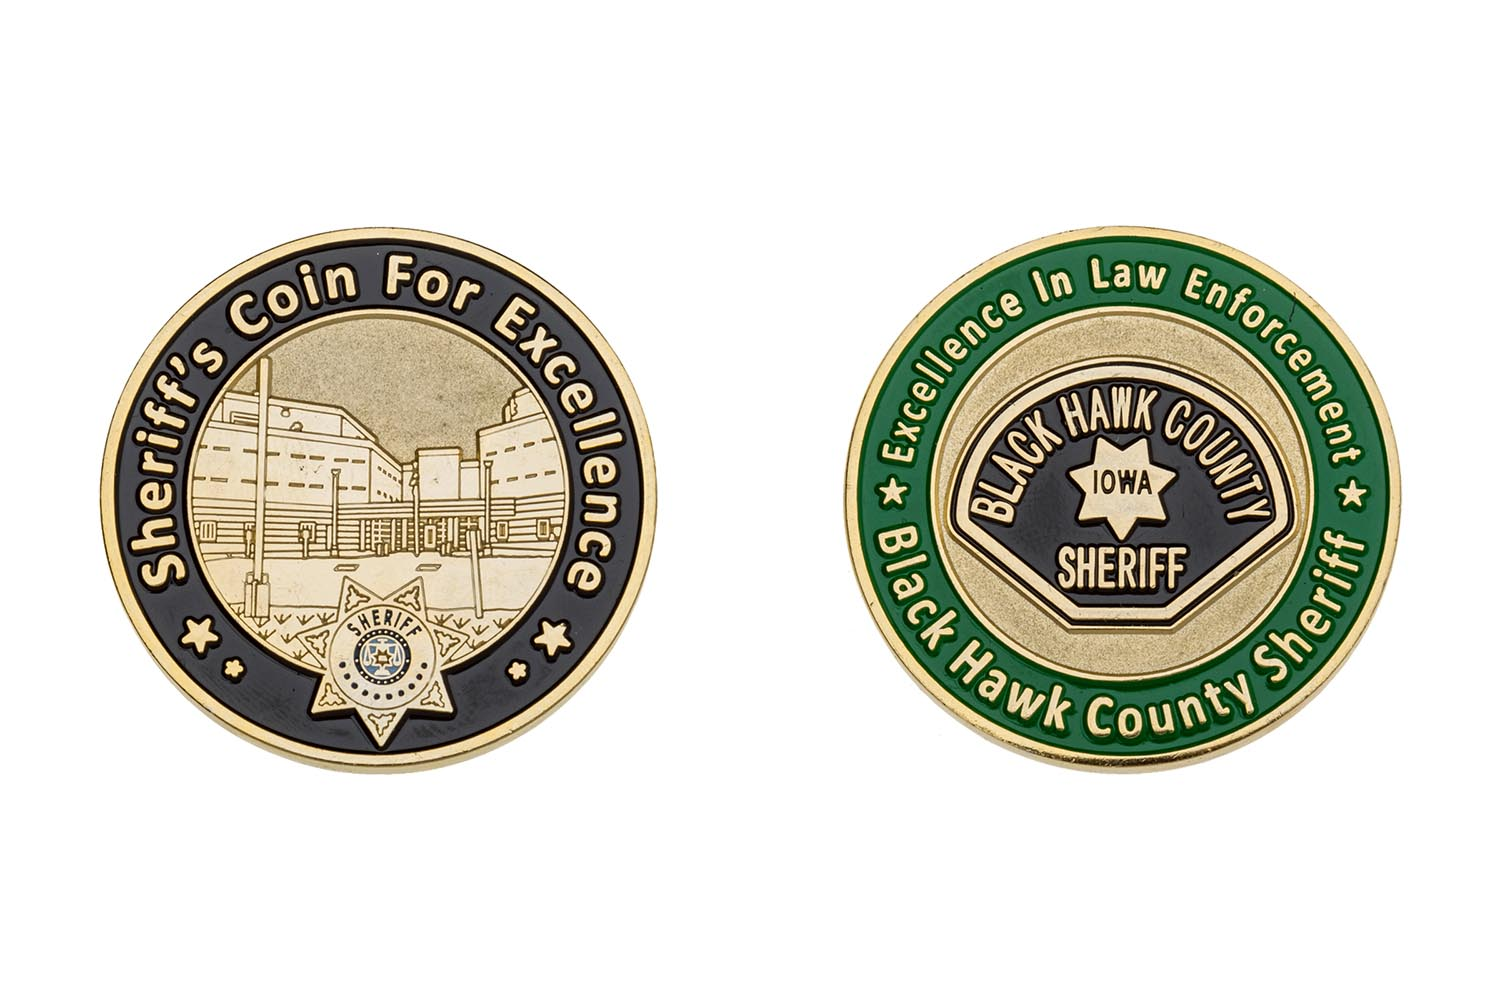 Police Challenge Coin Ideas - Year of Clean Water